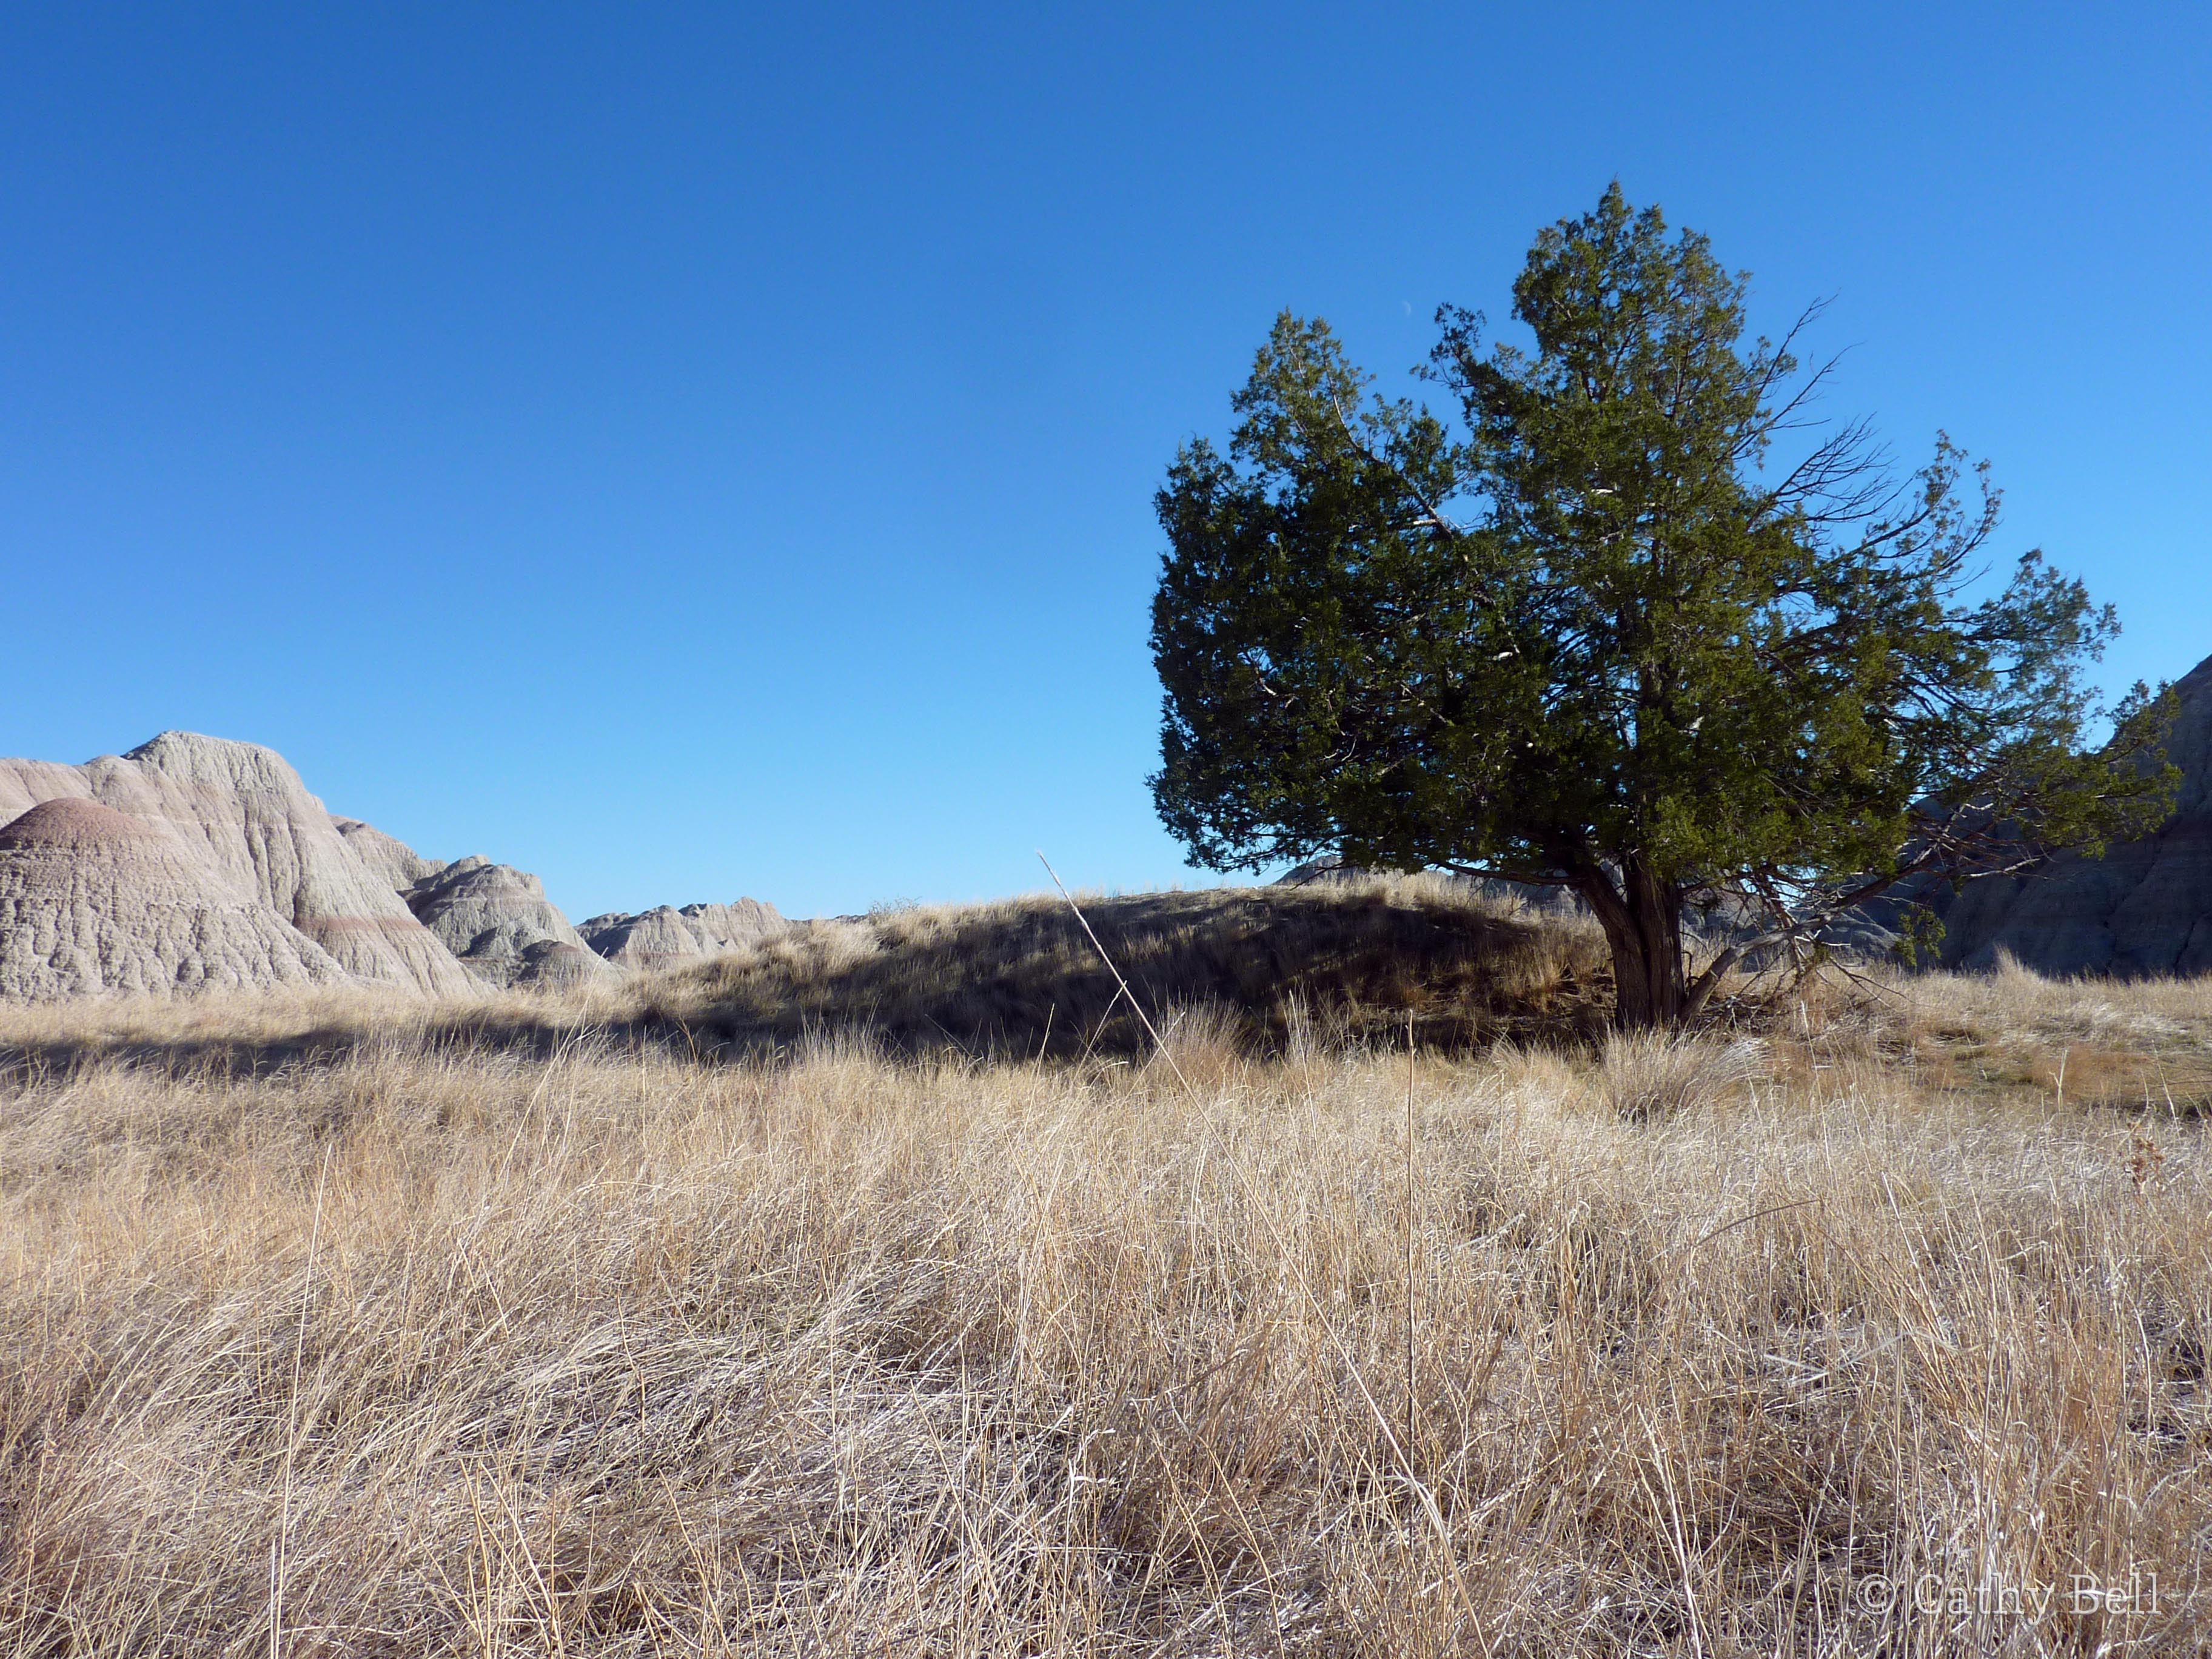 Tree tuesday meet the junipers of badlands cathy bell for The juniper